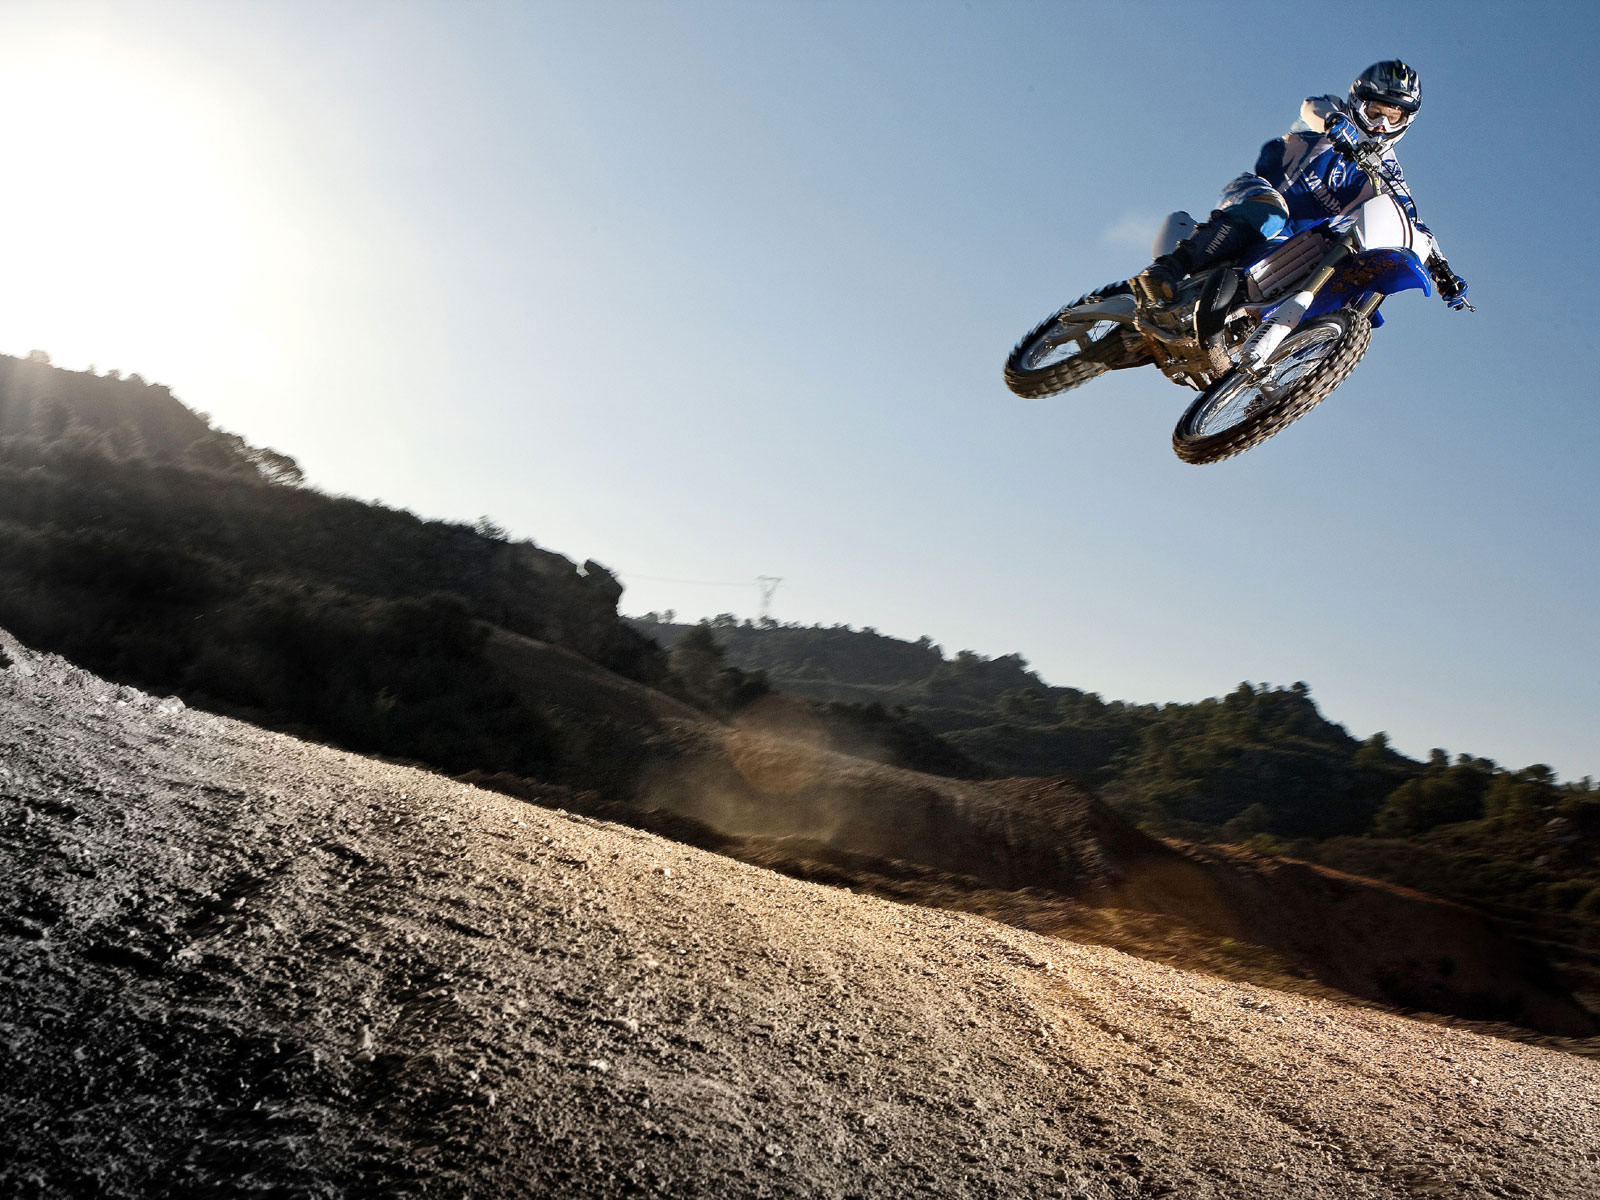 of Yamaha dirt bikes.